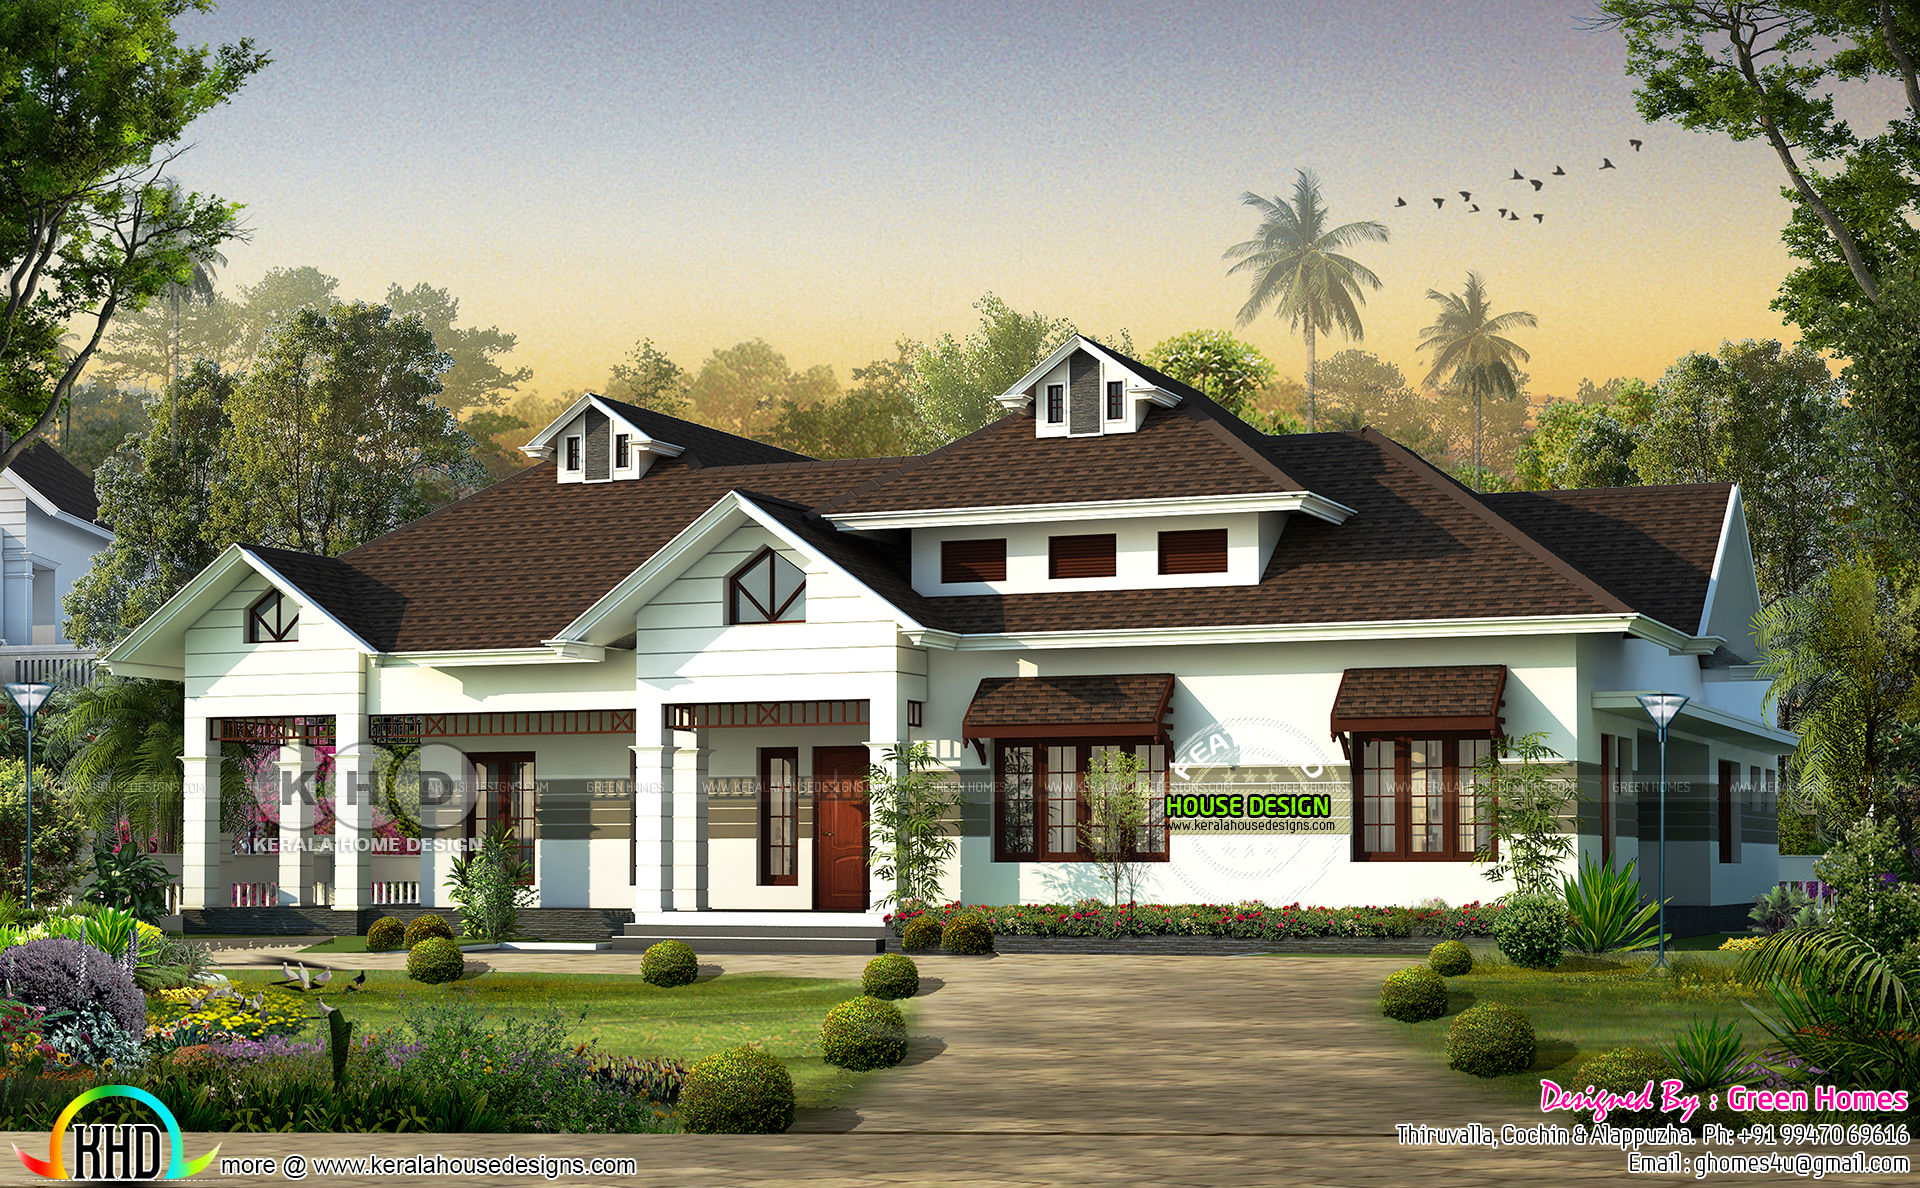 Square Feet Details. Total Area : 3100 Sq.Ft. No. Of Bedrooms : 3. Design  Style : Sloping Roof